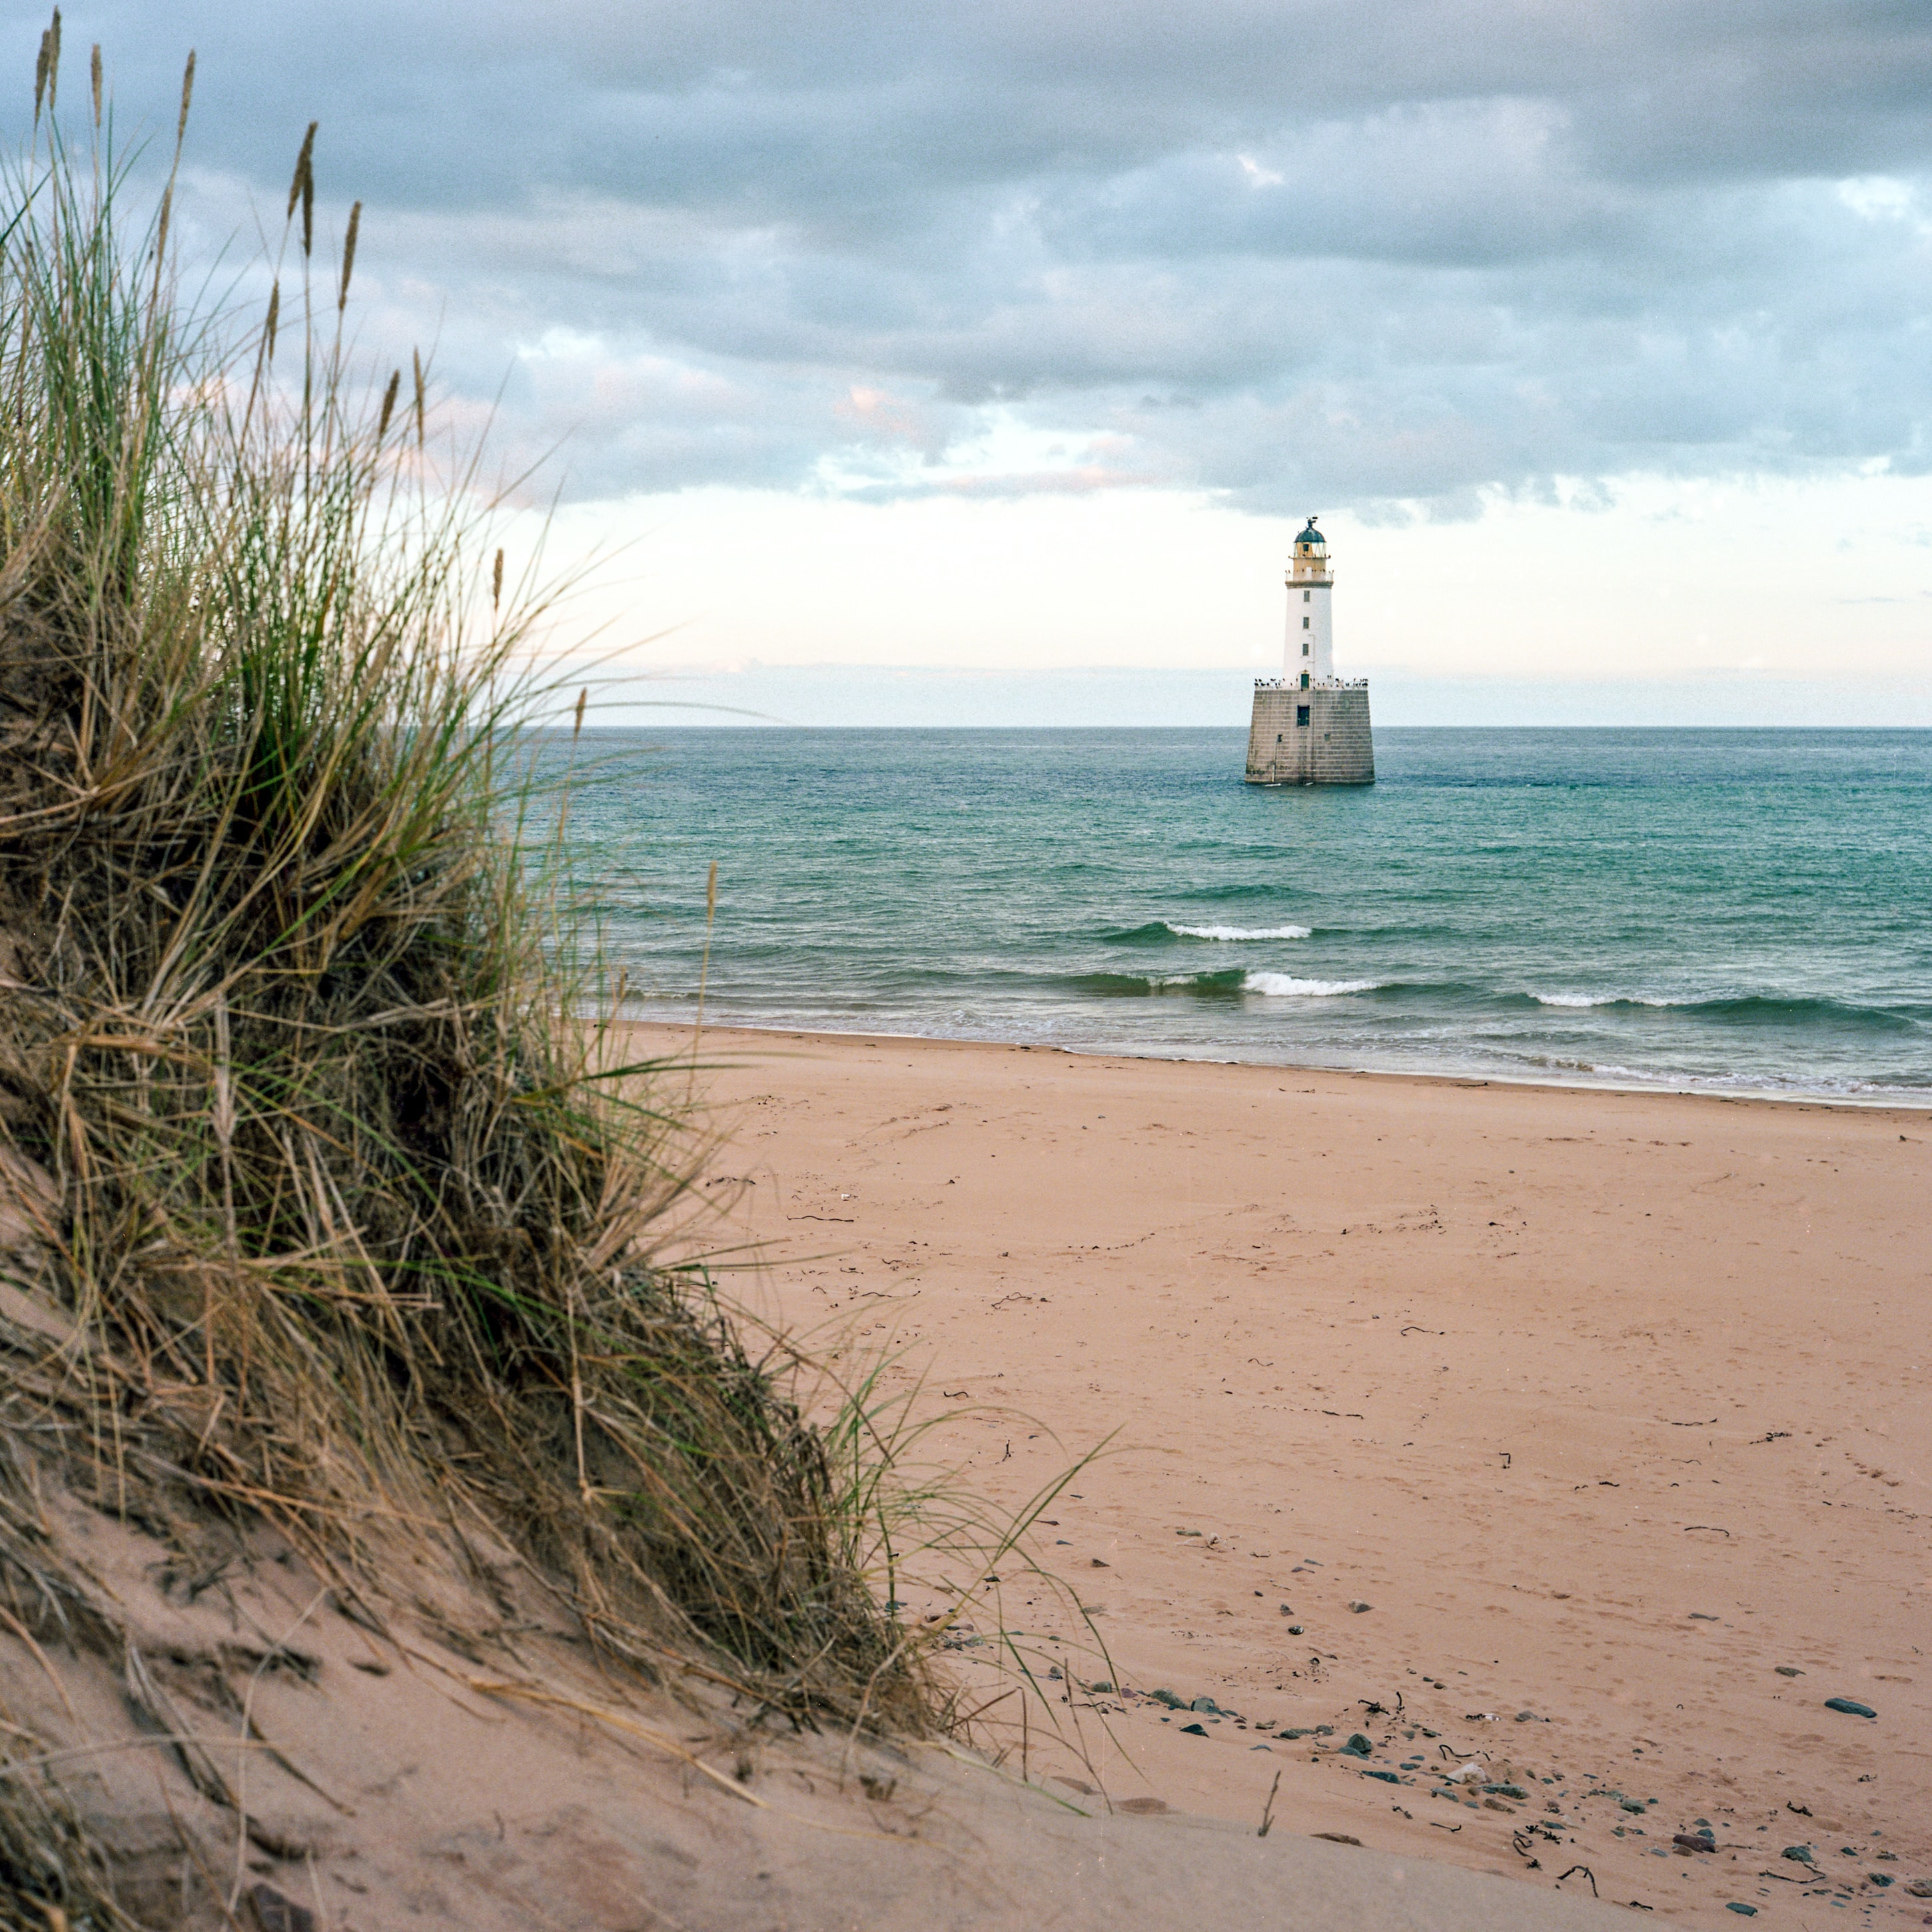 brown and white lighthouse near seashore during daytime